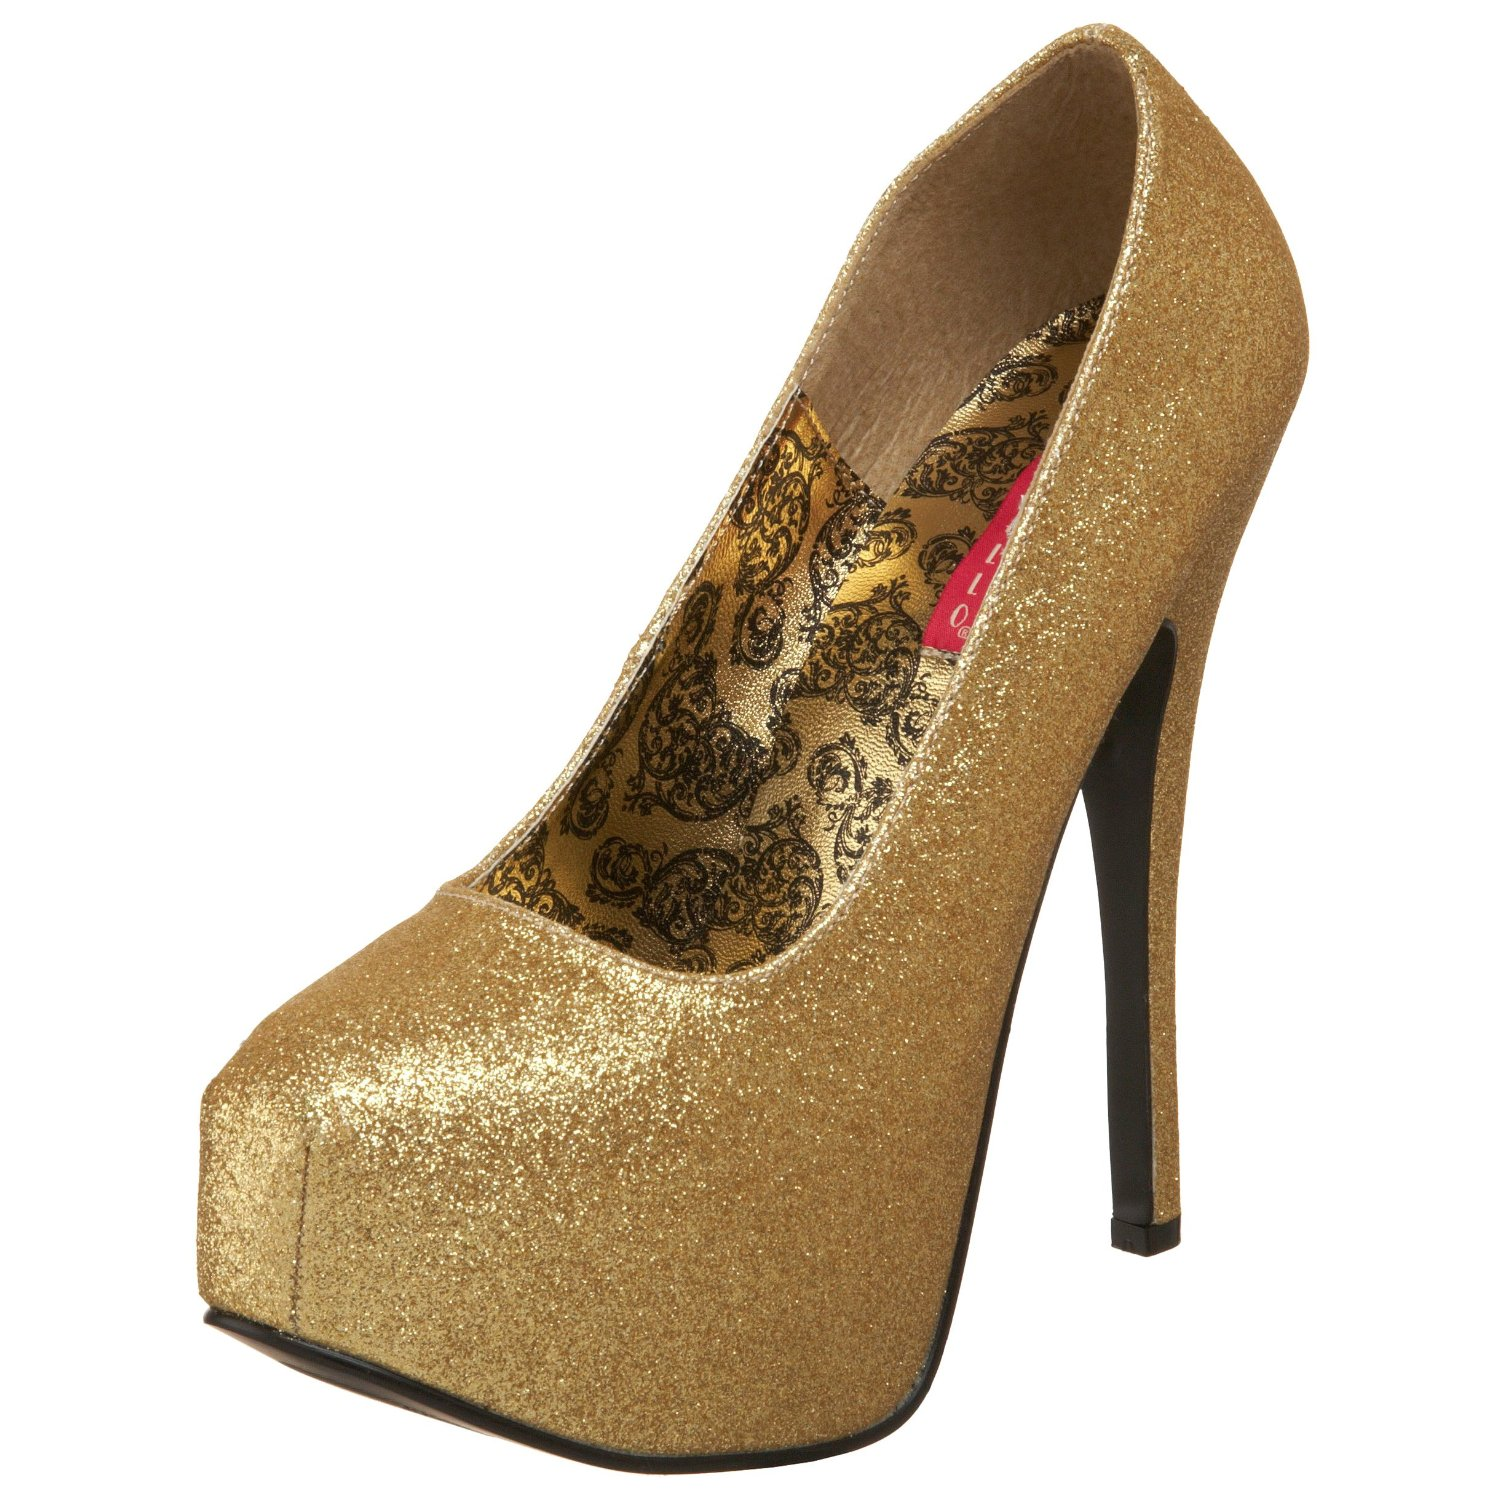 Women's Heels: High Heels & Pumps Shoes A woman can never have too many high heels. Choose from a wide selection of colors, classic nude and black heels, outrageous red pumps .